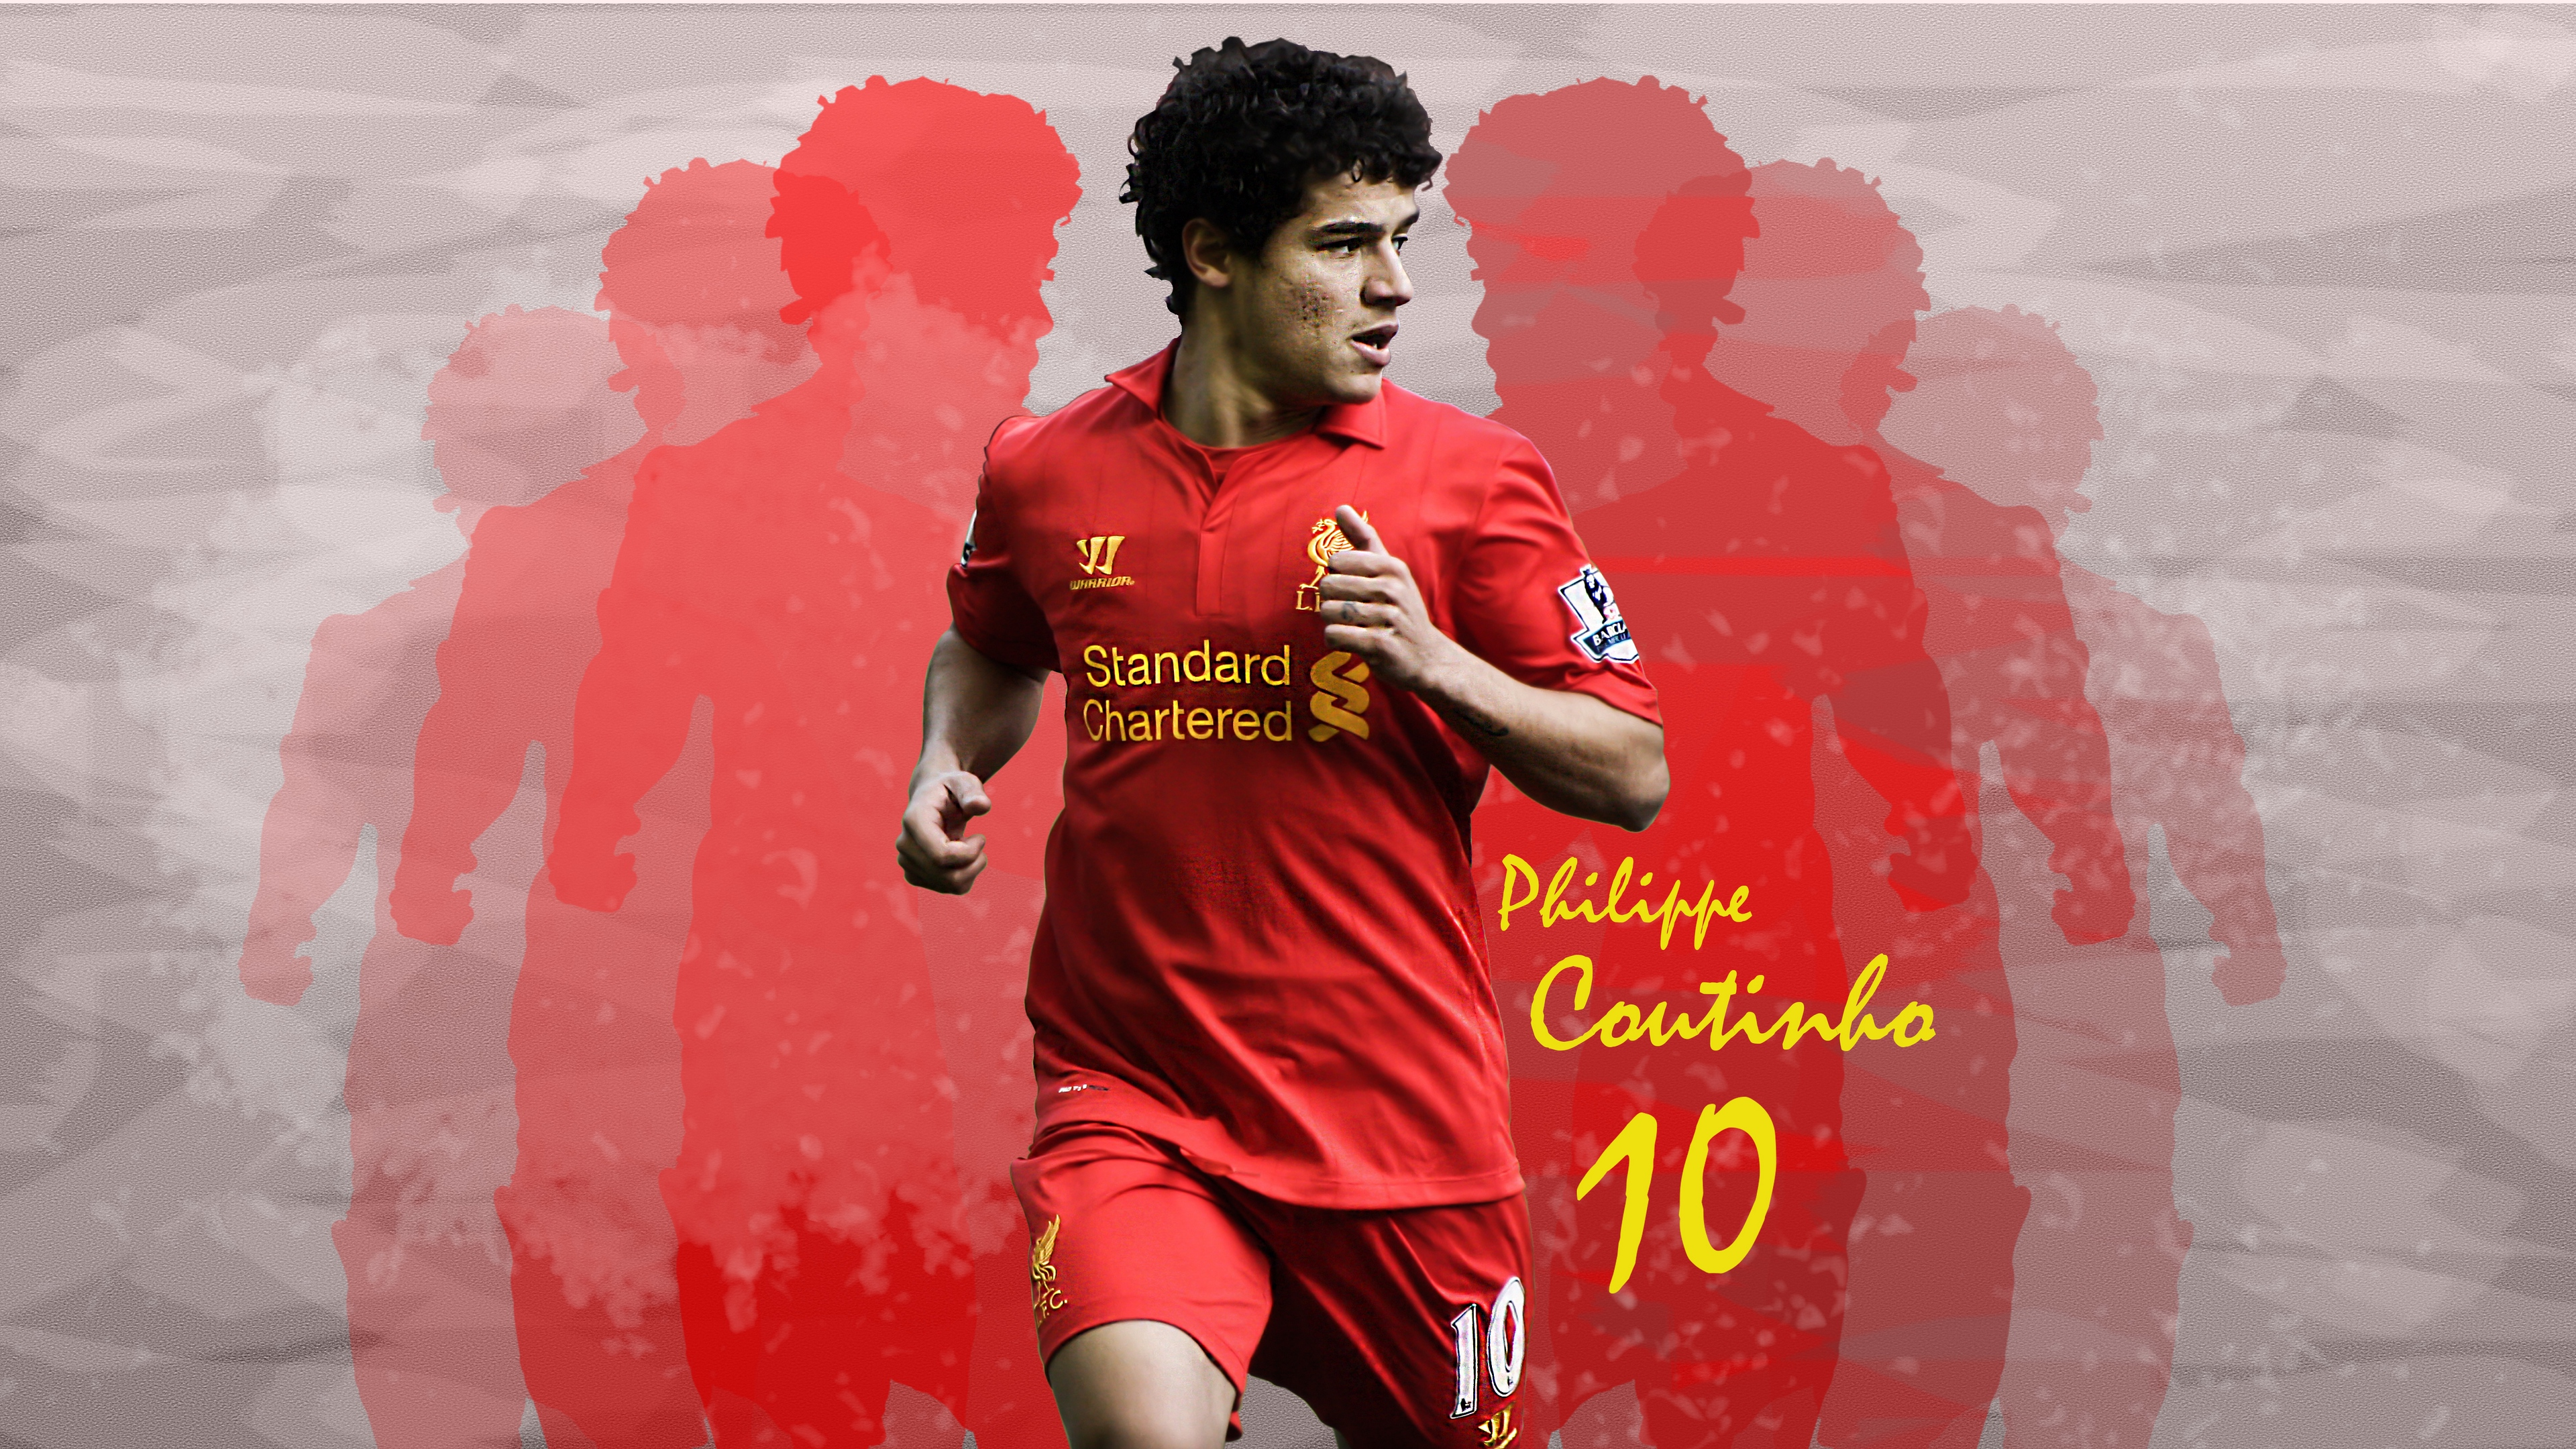 Wallpaper 4k Philippe Coutinho Liverpool Fc Soccer Player 4k Liverpool Fc Philippe Coutinho Soccer Player